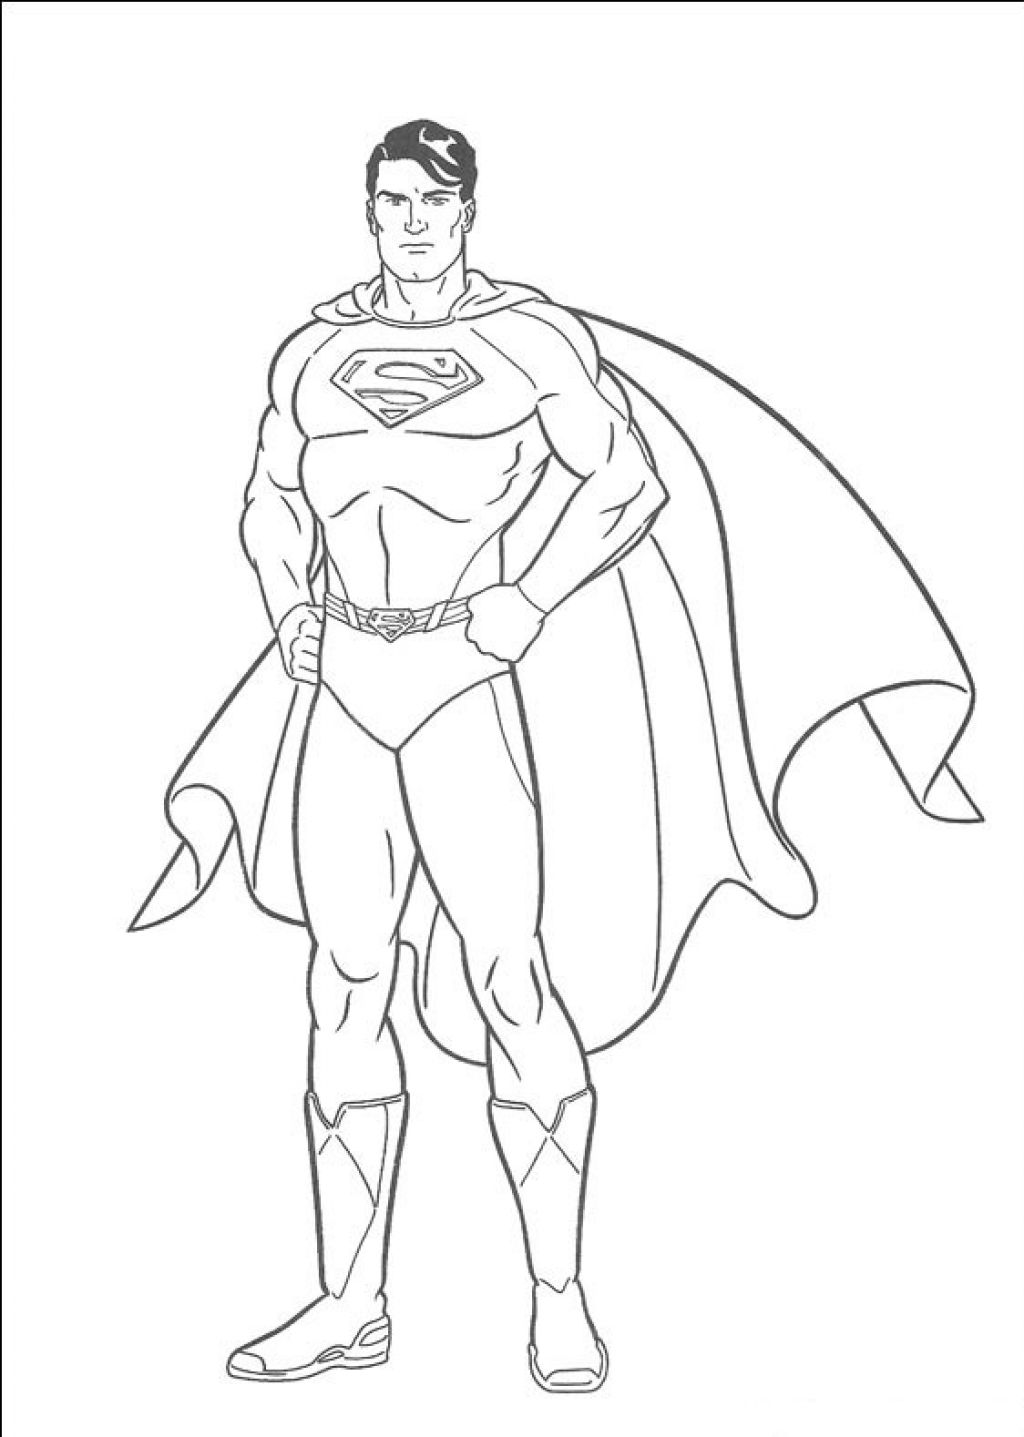 It is an image of Vibrant Superman Coloring Pages Printable